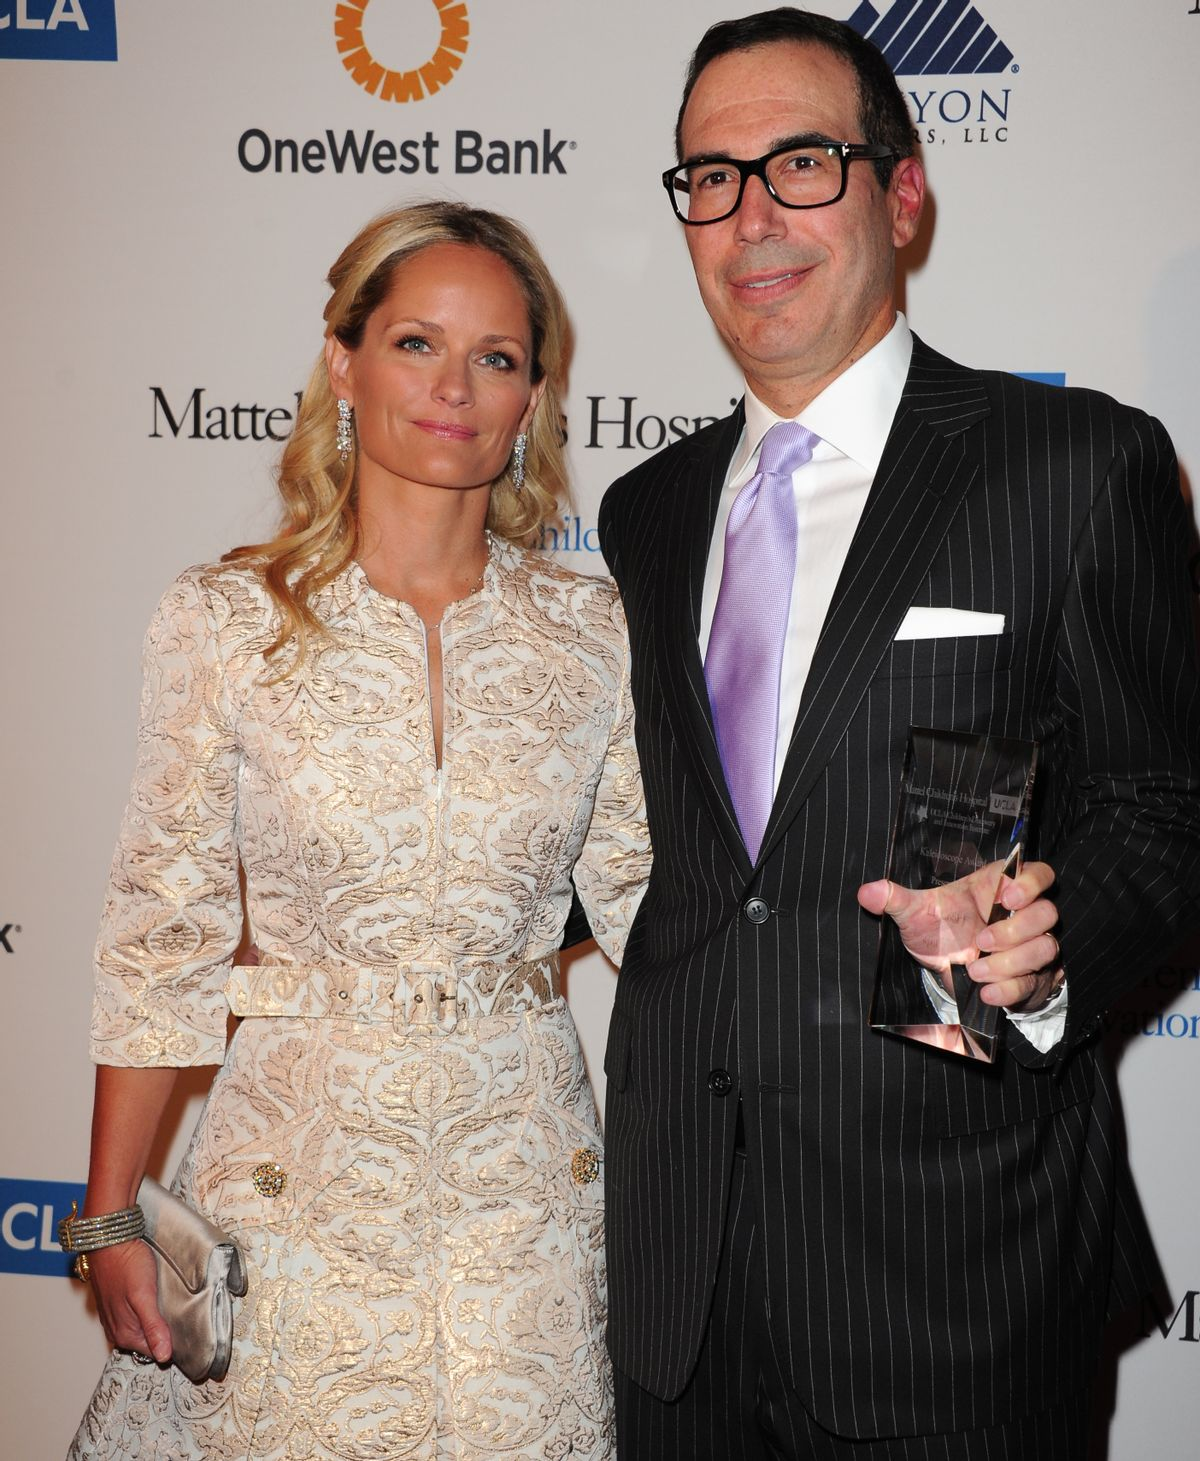 """FILE - In this April 17, 2013 file photo, Heather Mnuchin, left, and Steven Mnuchin arrive at The Kaleidoscope Ball's """"Designing The Future"""" at the Beverly Hills Hotel in Beverly Hills, Calif.  (Richard Shotwell/invision/ap)"""